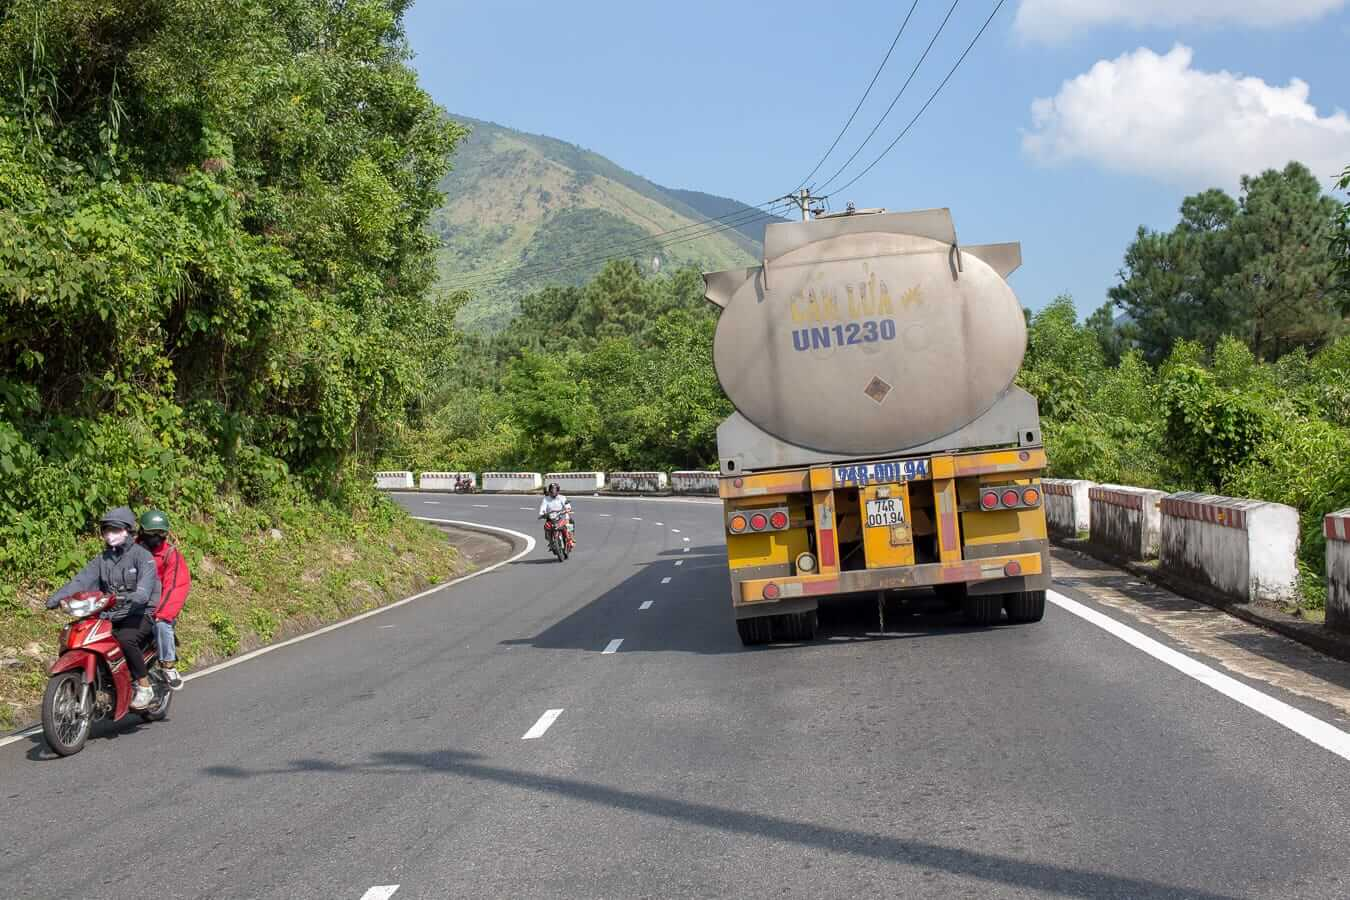 Fuel tanker driving on mountain roads